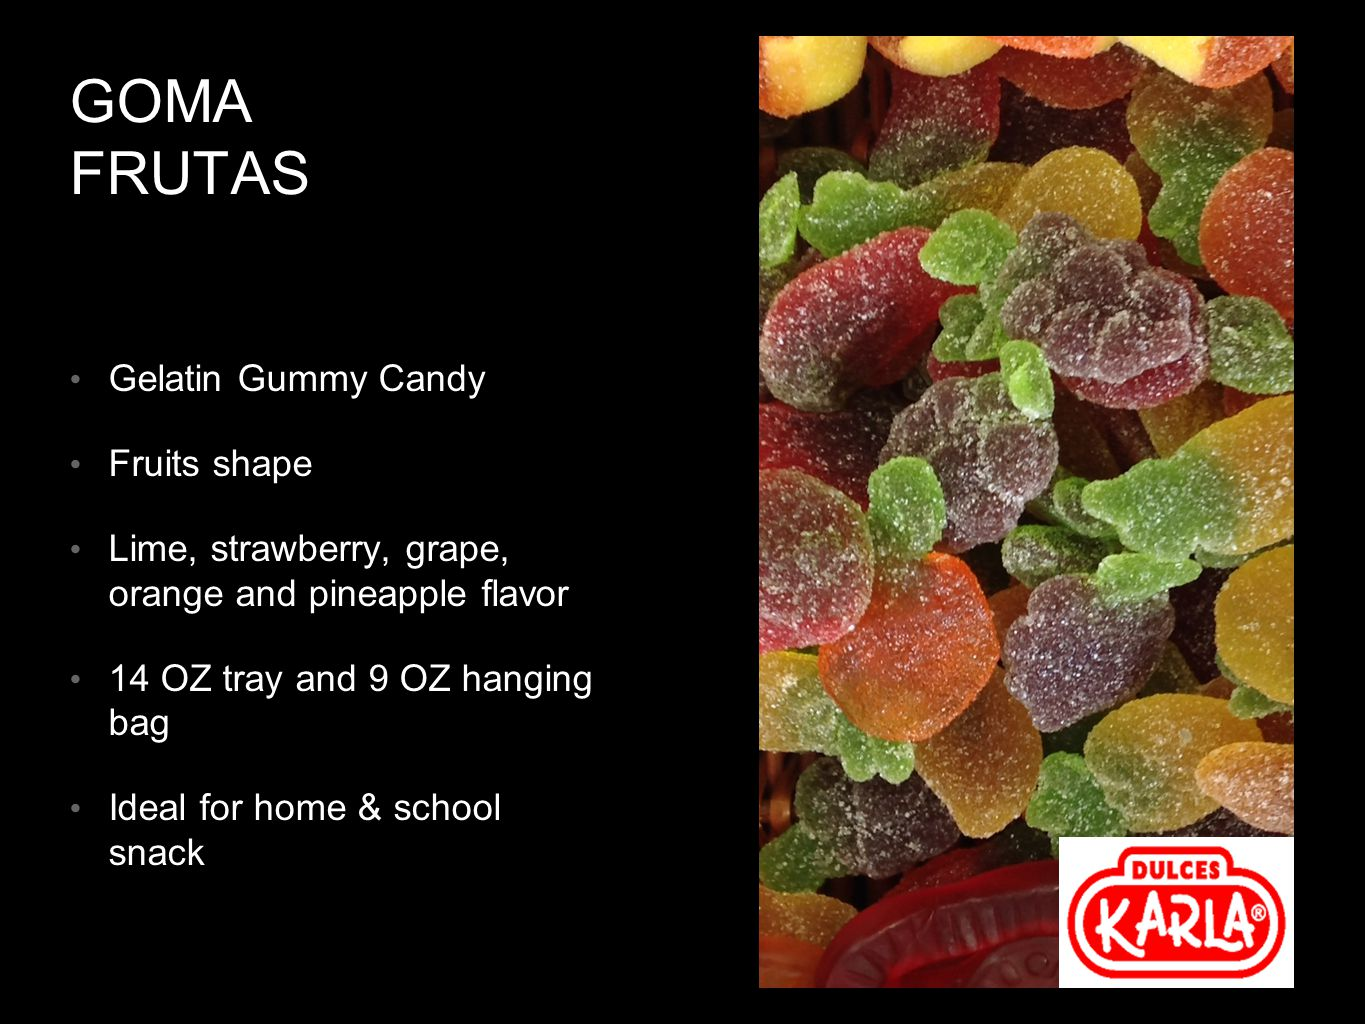 GOMA FRUTAS Gelatin Gummy Candy Fruits shape Lime, strawberry, grape, orange and pineapple flavor 14 OZ tray and 9 OZ hanging bag Ideal for home & school snack